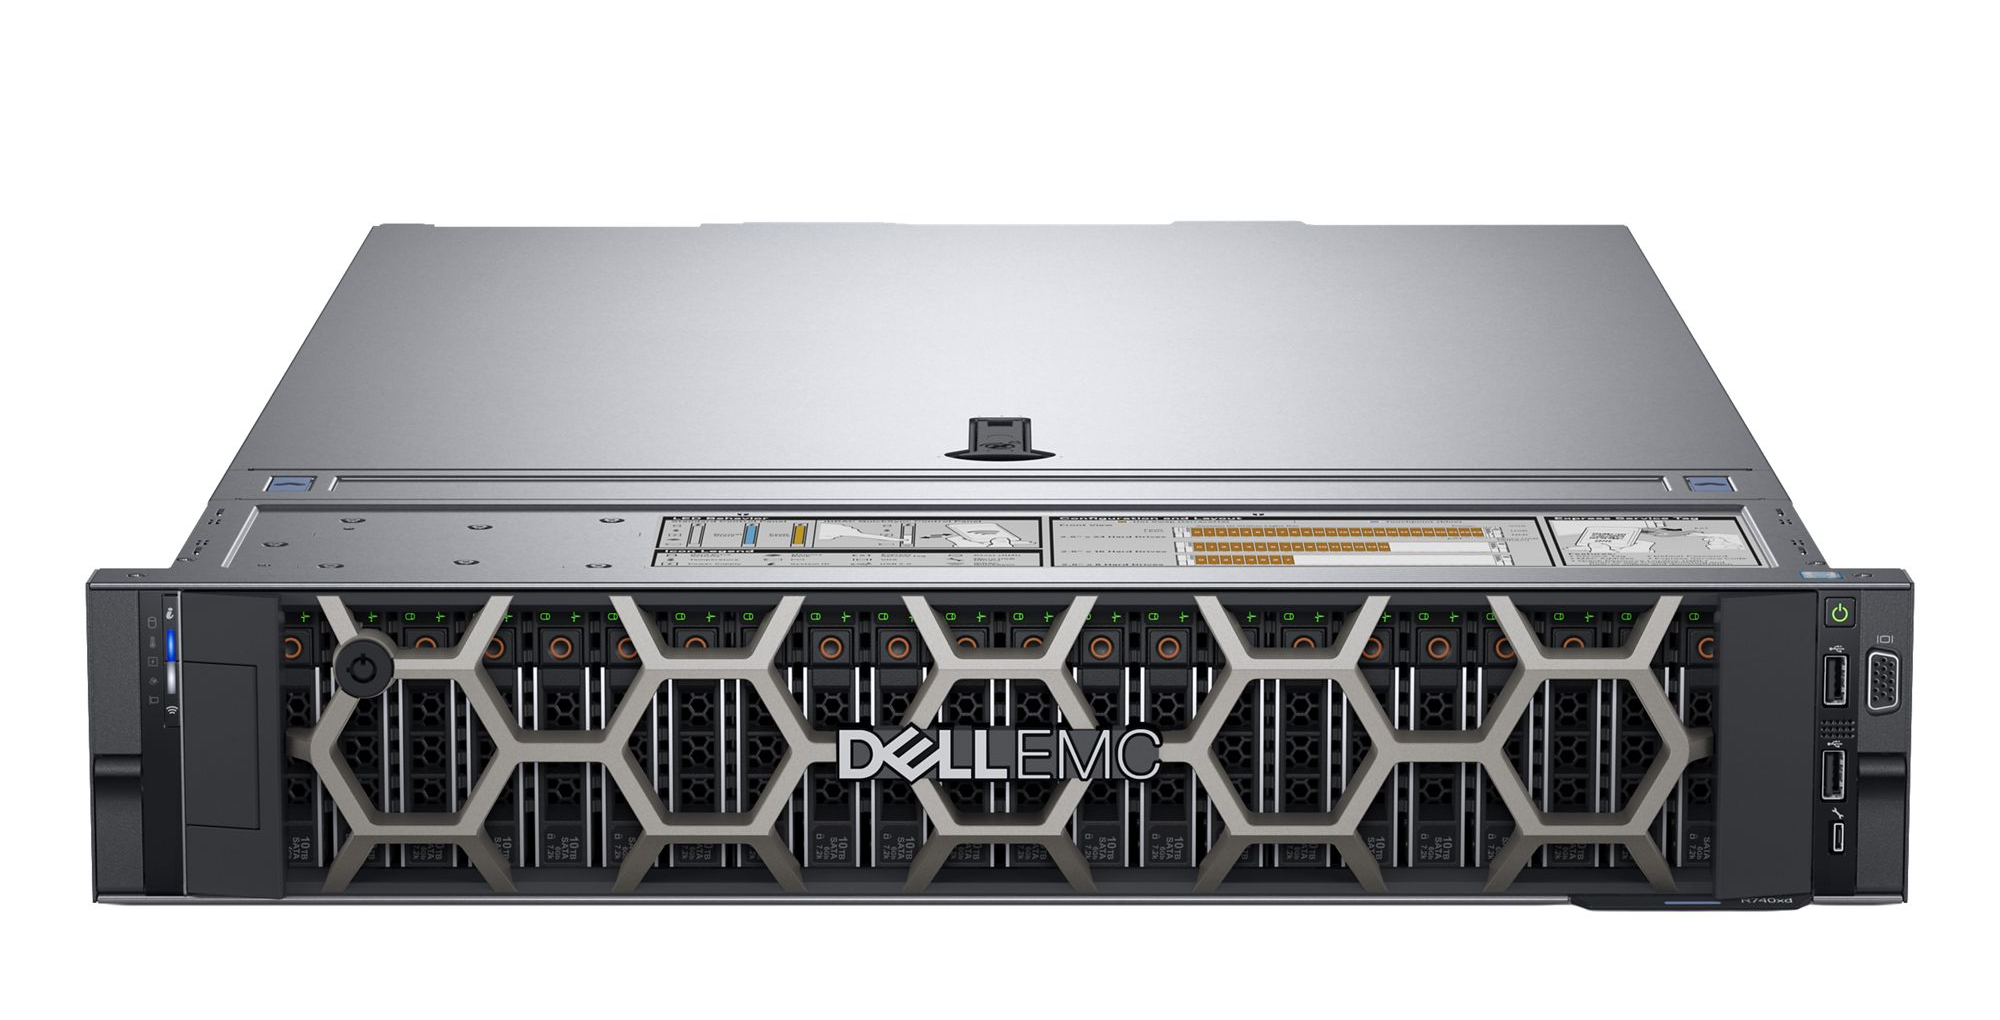 Dell R740 2U Rack Server | Refurbished PowerEdge Servers